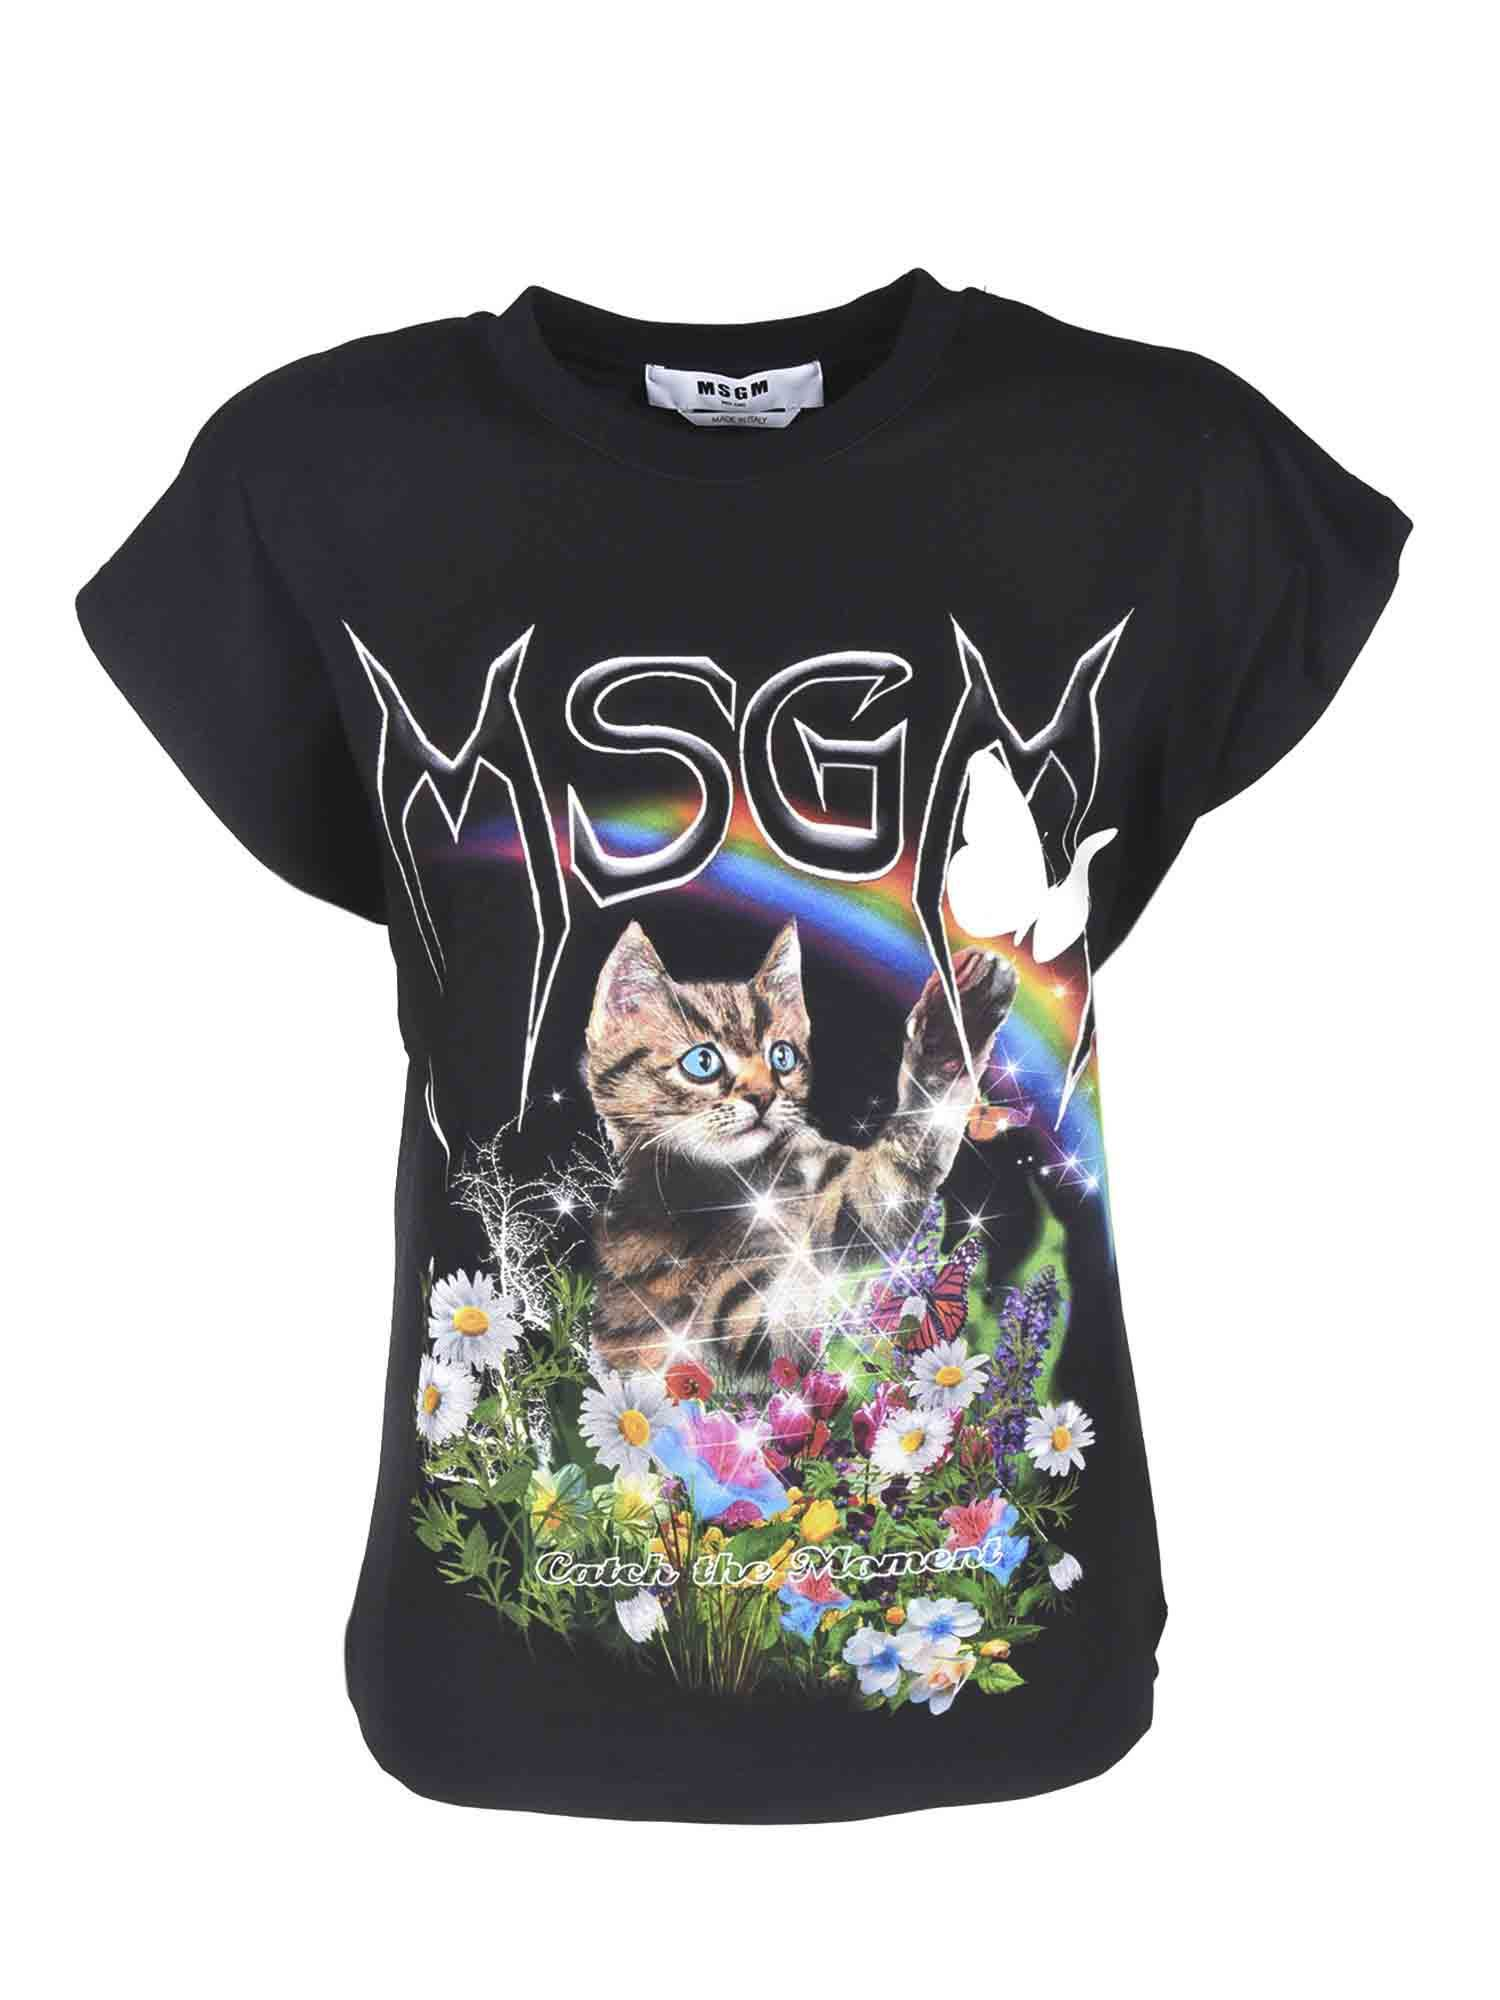 Msgm PRINTED T-SHIRT IN BLACK